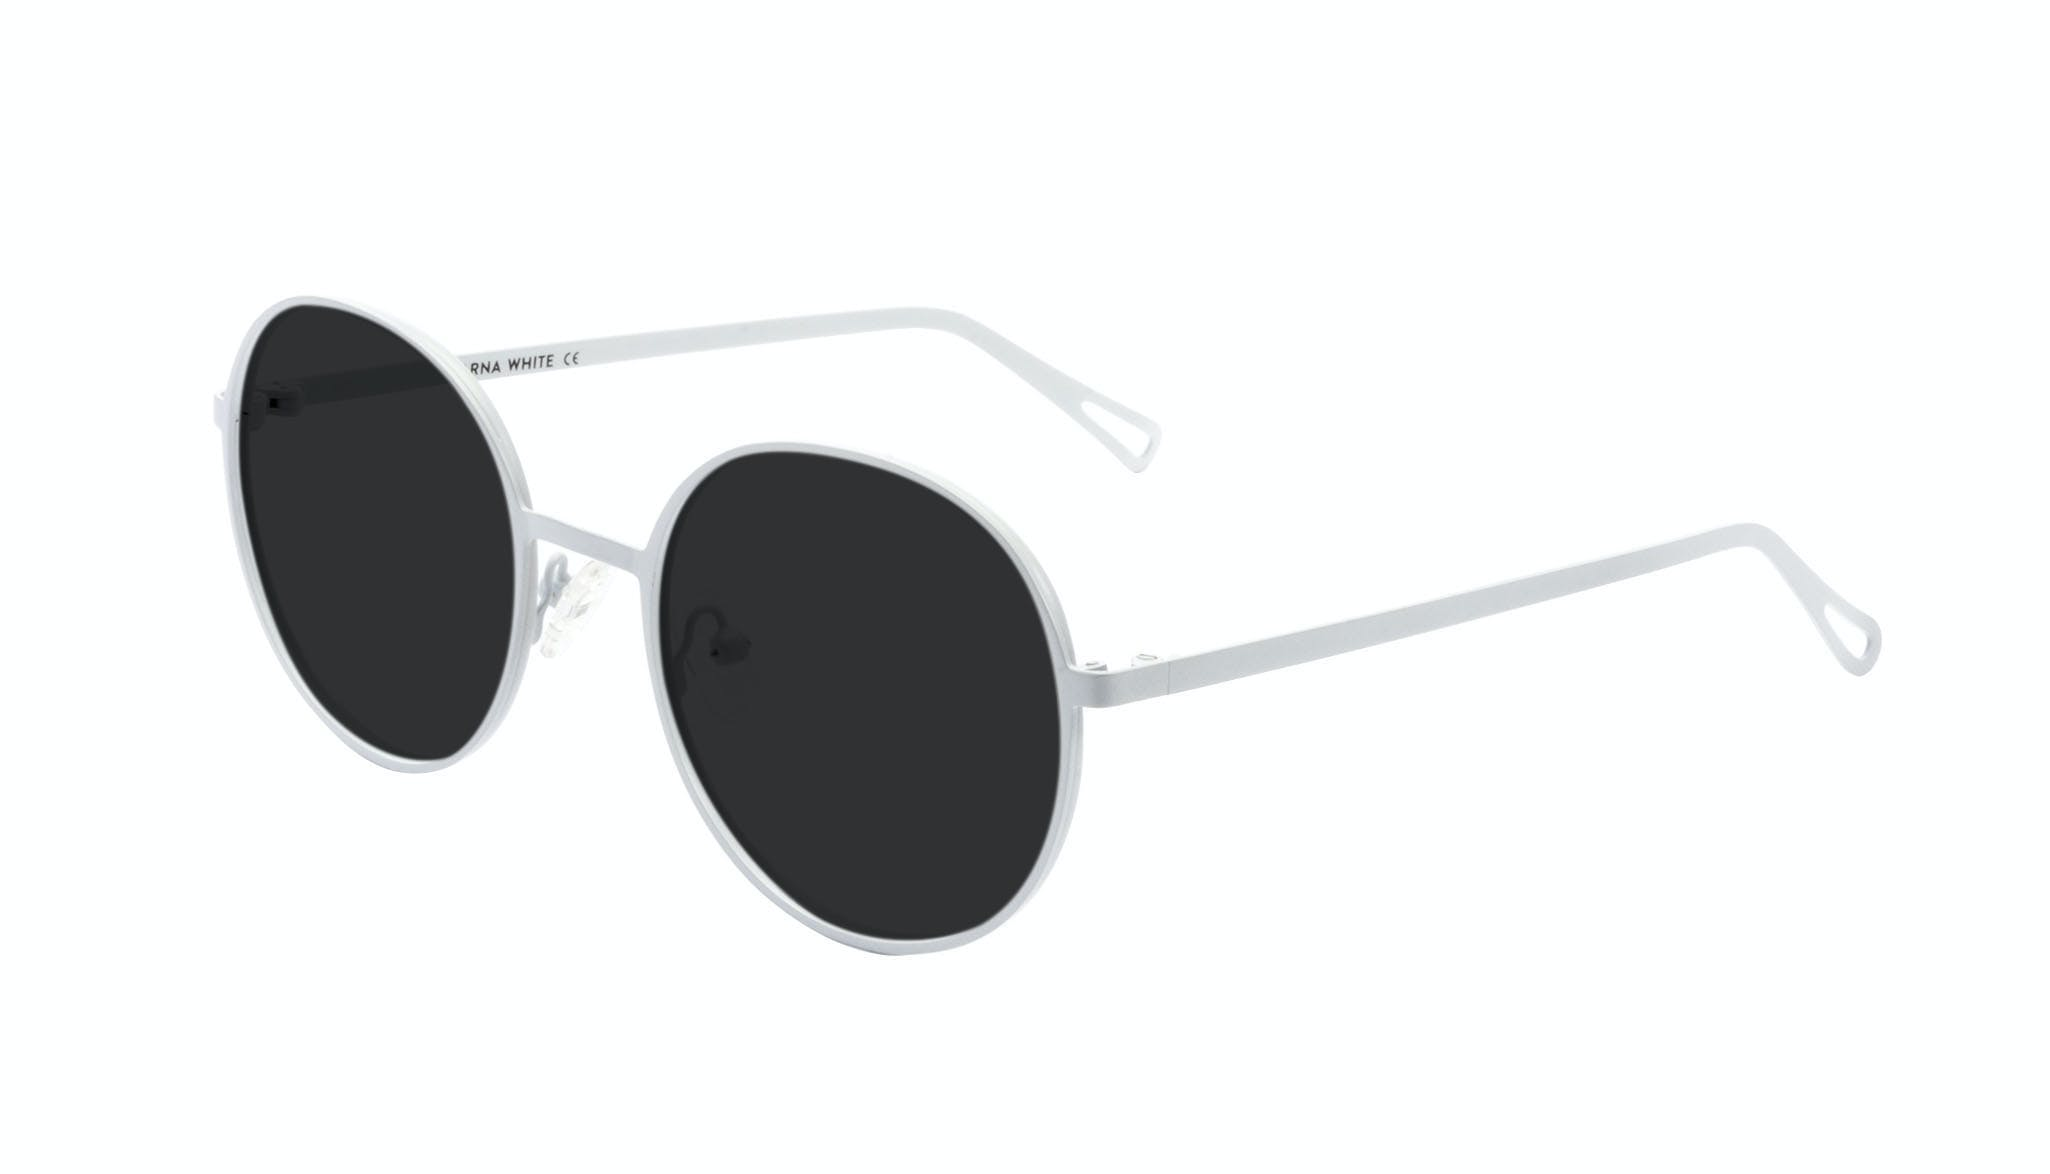 Affordable Fashion Glasses Round Sunglasses Men Women Varna White Tilt